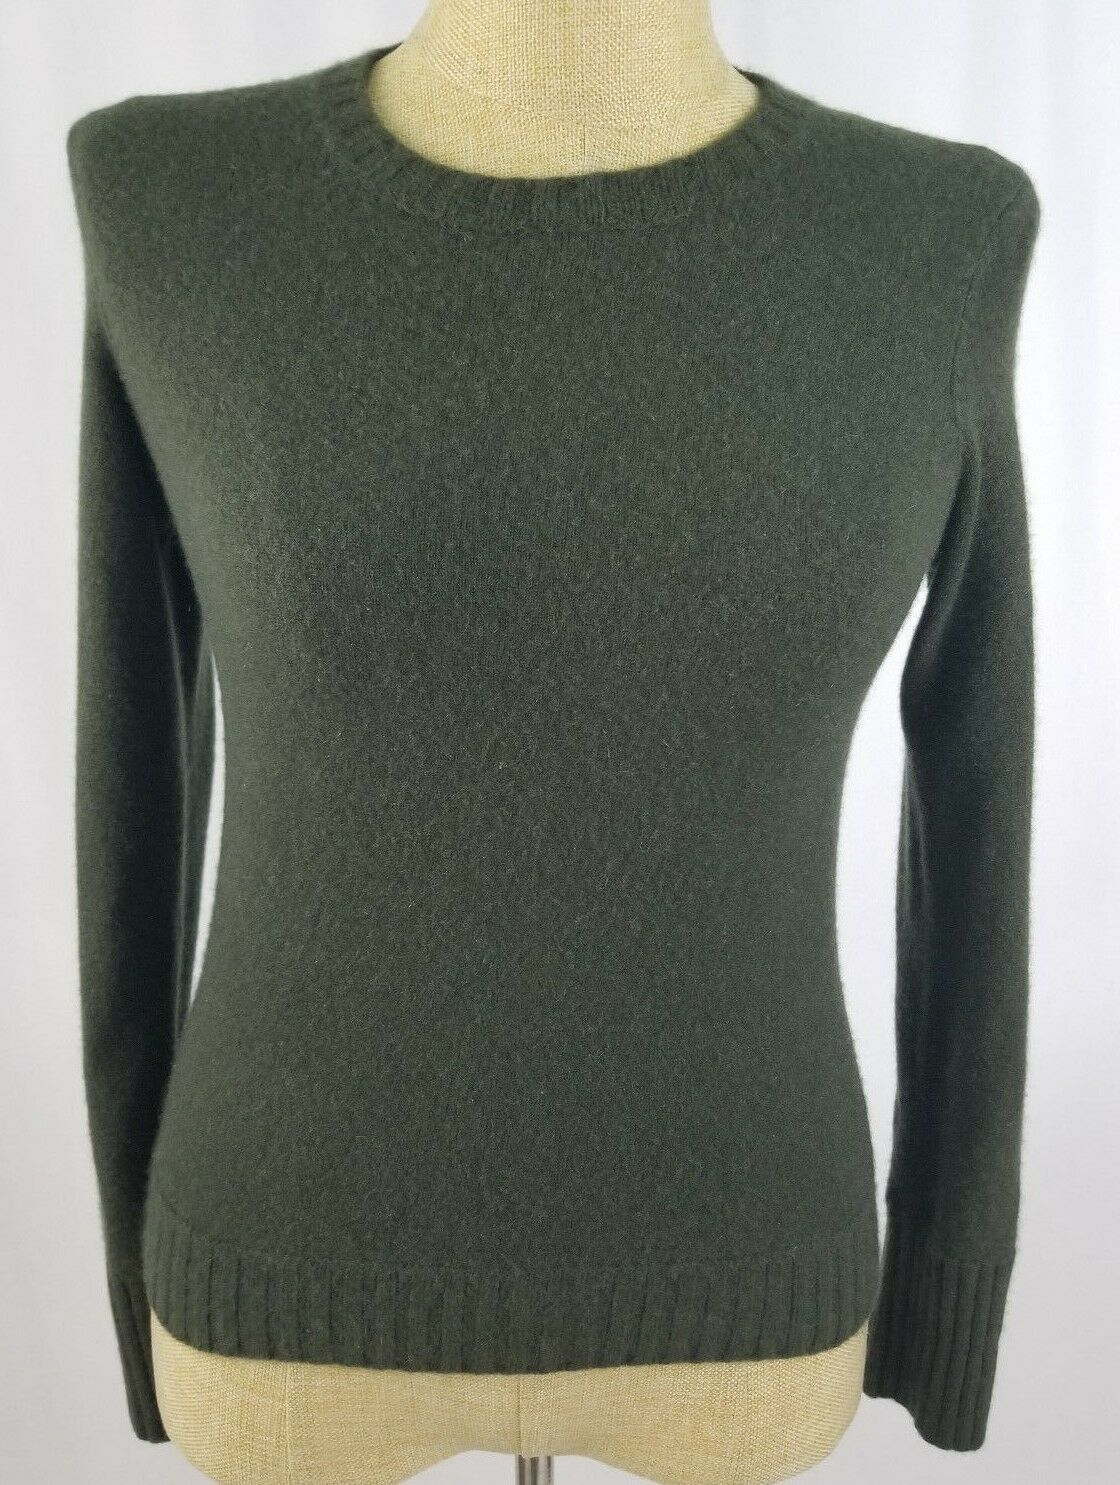 Ralph Lauren Green 100% Cashmere Size Small Long Sleeve Sweater Women's